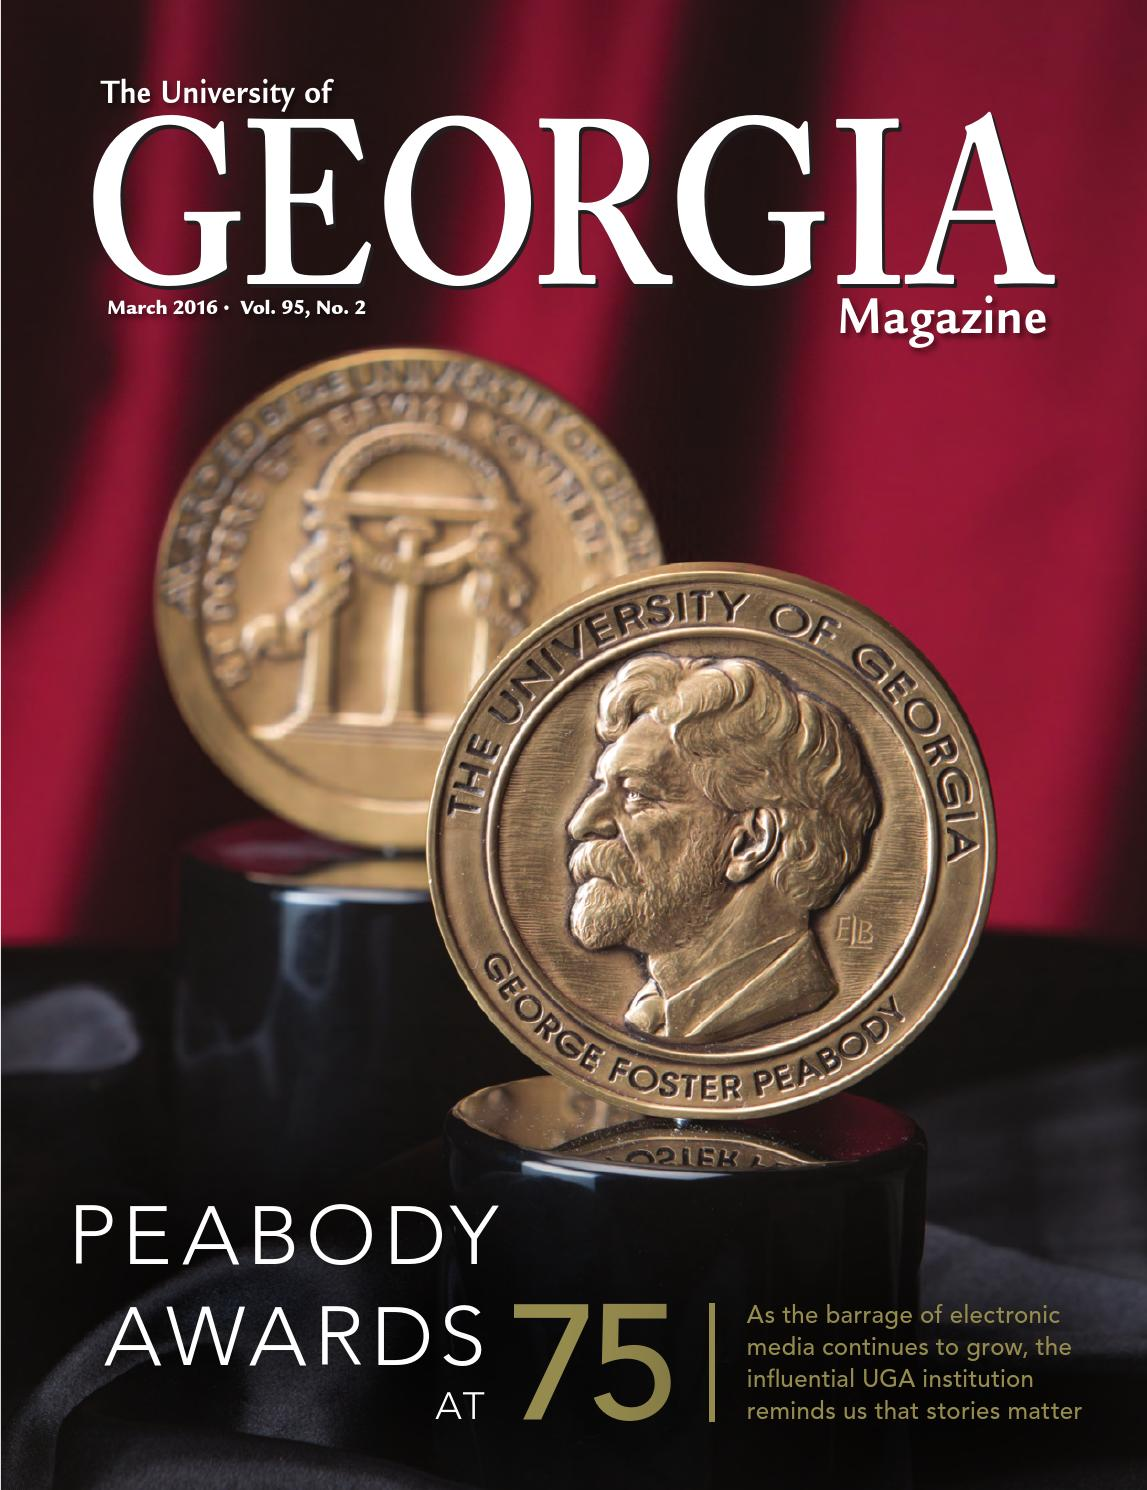 uga admissions essay Application process the statement should be typed in essay format with a title of career goals the university of georgia athens, ga 30602.